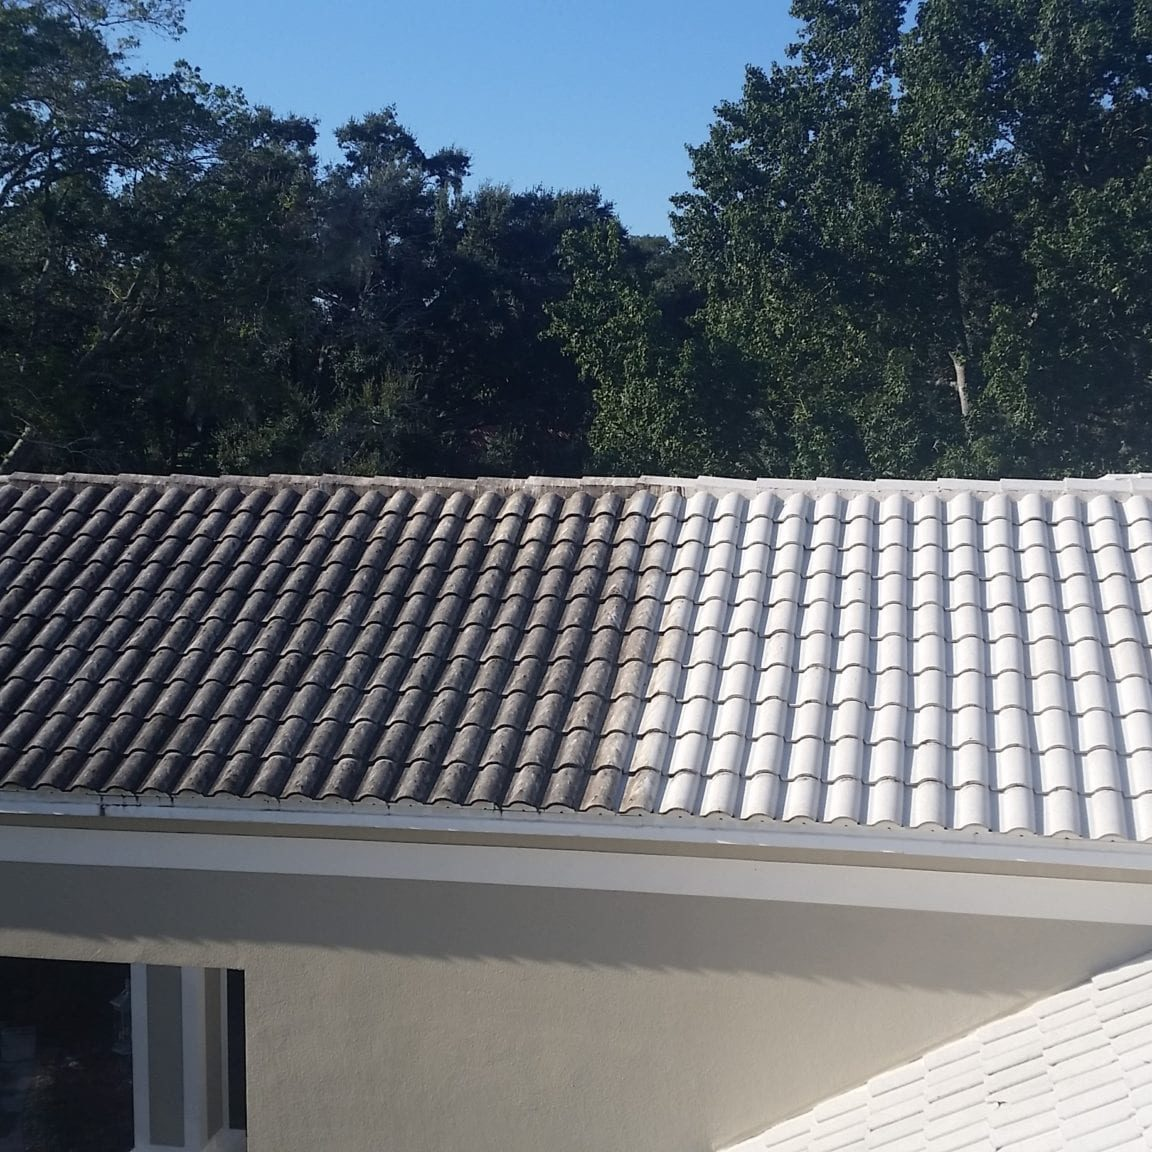 Is Your Roof Under Attack? Roofs in Lakeland and the rest of Florida present the perfect living quarters for algae, moss, and other mold. The worst culprit is a type of bacteria called Gloeocapsa Magma. It creates black streaks across your roofing – and as it eats the limestone in your shingles, it spreads. The result is ugly and dangerous. Without regular cleaning, this bacteria will deteriorate your roofing. Algae growth on the roof can lead to premature granule loss. It makes your roof to appear much older than it is, and it creates issues that cost money and take time to fix. No roofing material is safe from this kind of wear and tear: It affects asphalt roofing, slate, metal, and tile roofs alike. Here's the good news. There is an alternative. A professional roof cleaning will restore the original appearance of your roof and keep it from declining prematurely.